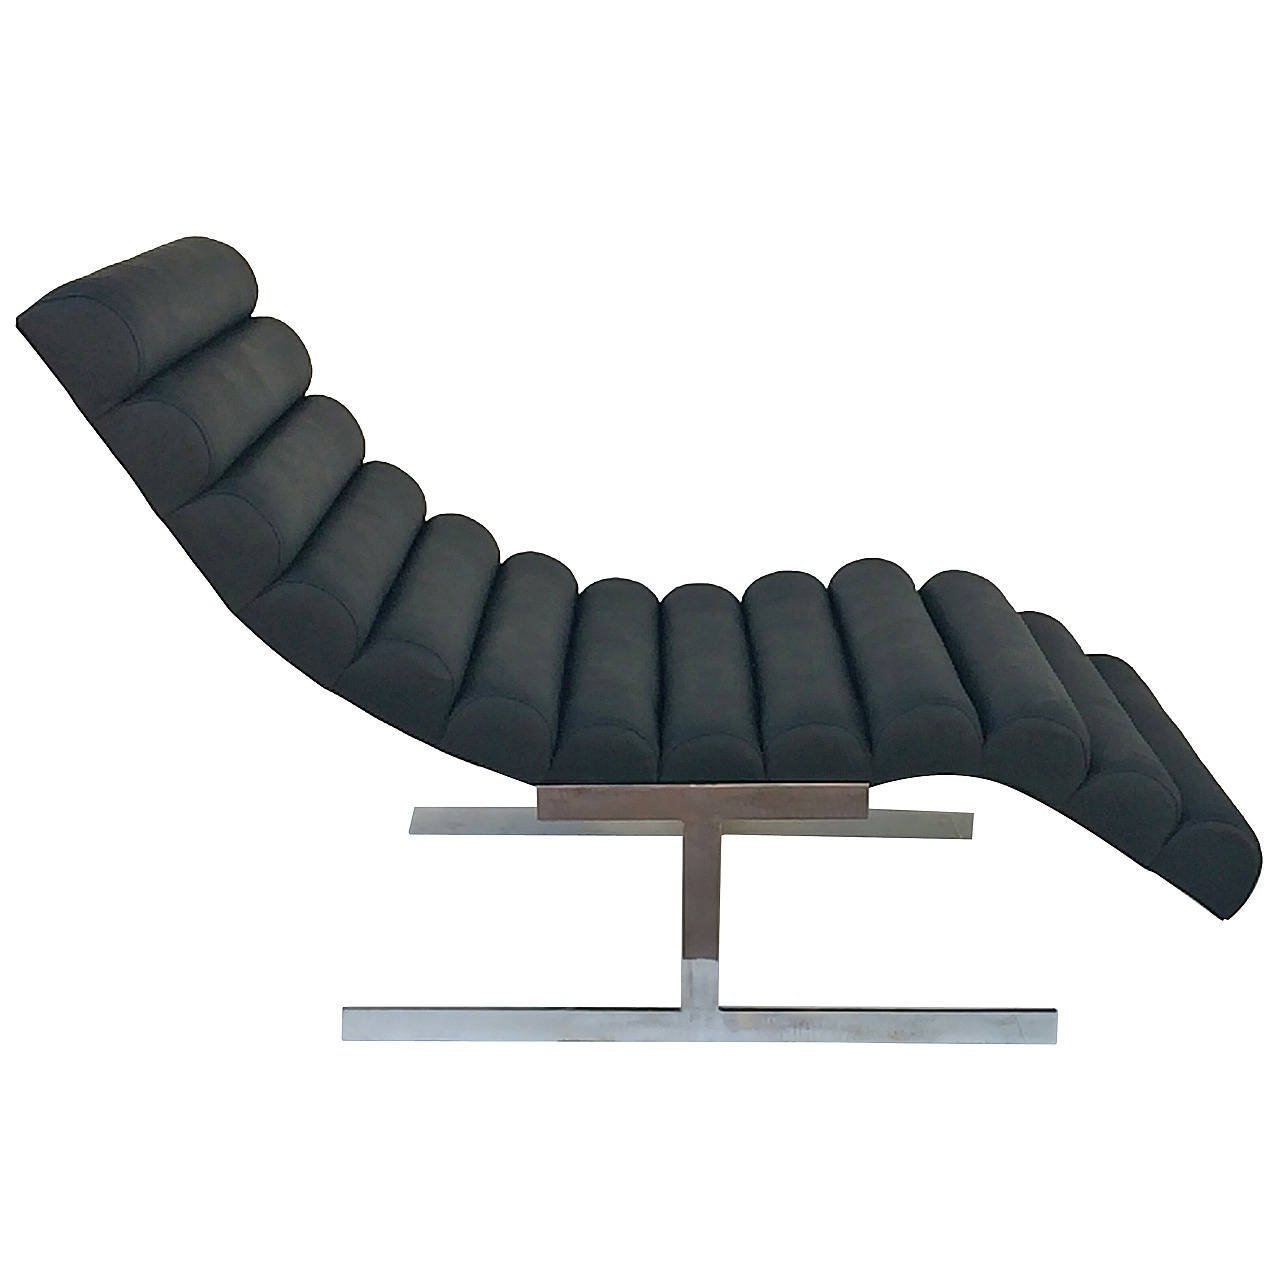 Favorite Black Channeled Leather Chaise Loungemilo Baughman At 1Stdibs With Regard To Black Leather Chaise Lounges (View 8 of 15)